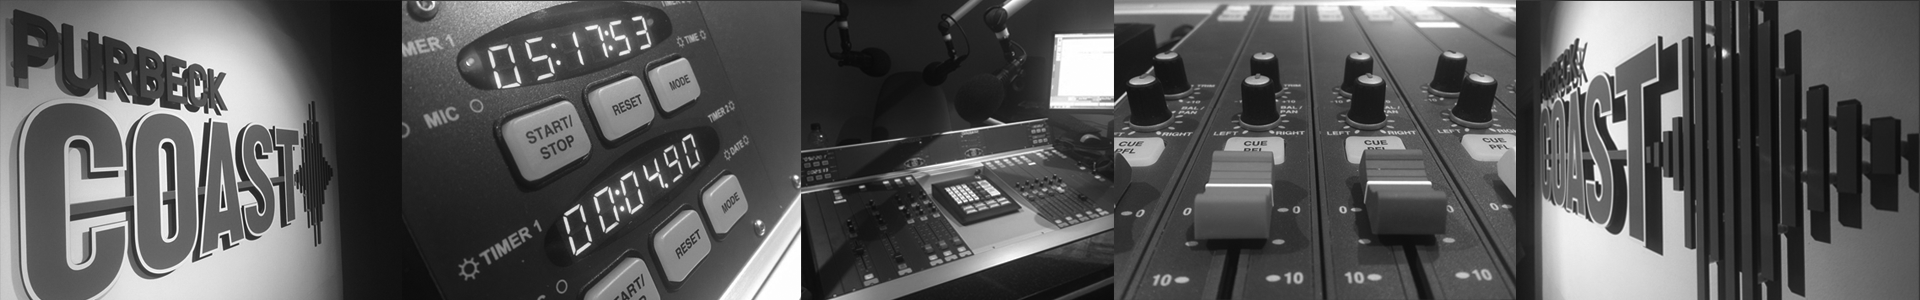 A Community Radio Station for Purbeck in Dorset